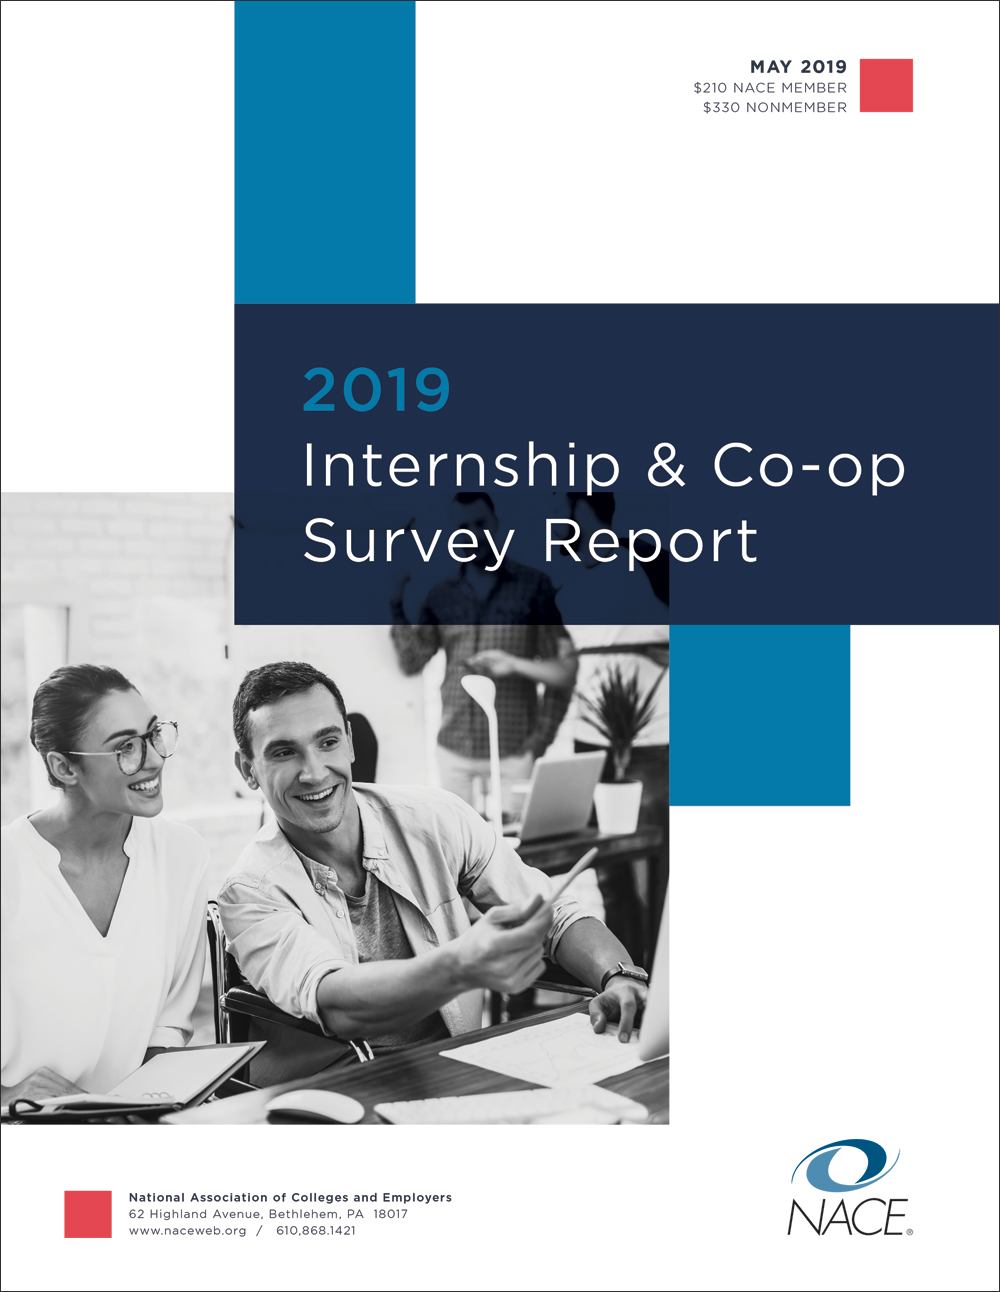 2019 Internship & Co-op Survey Report